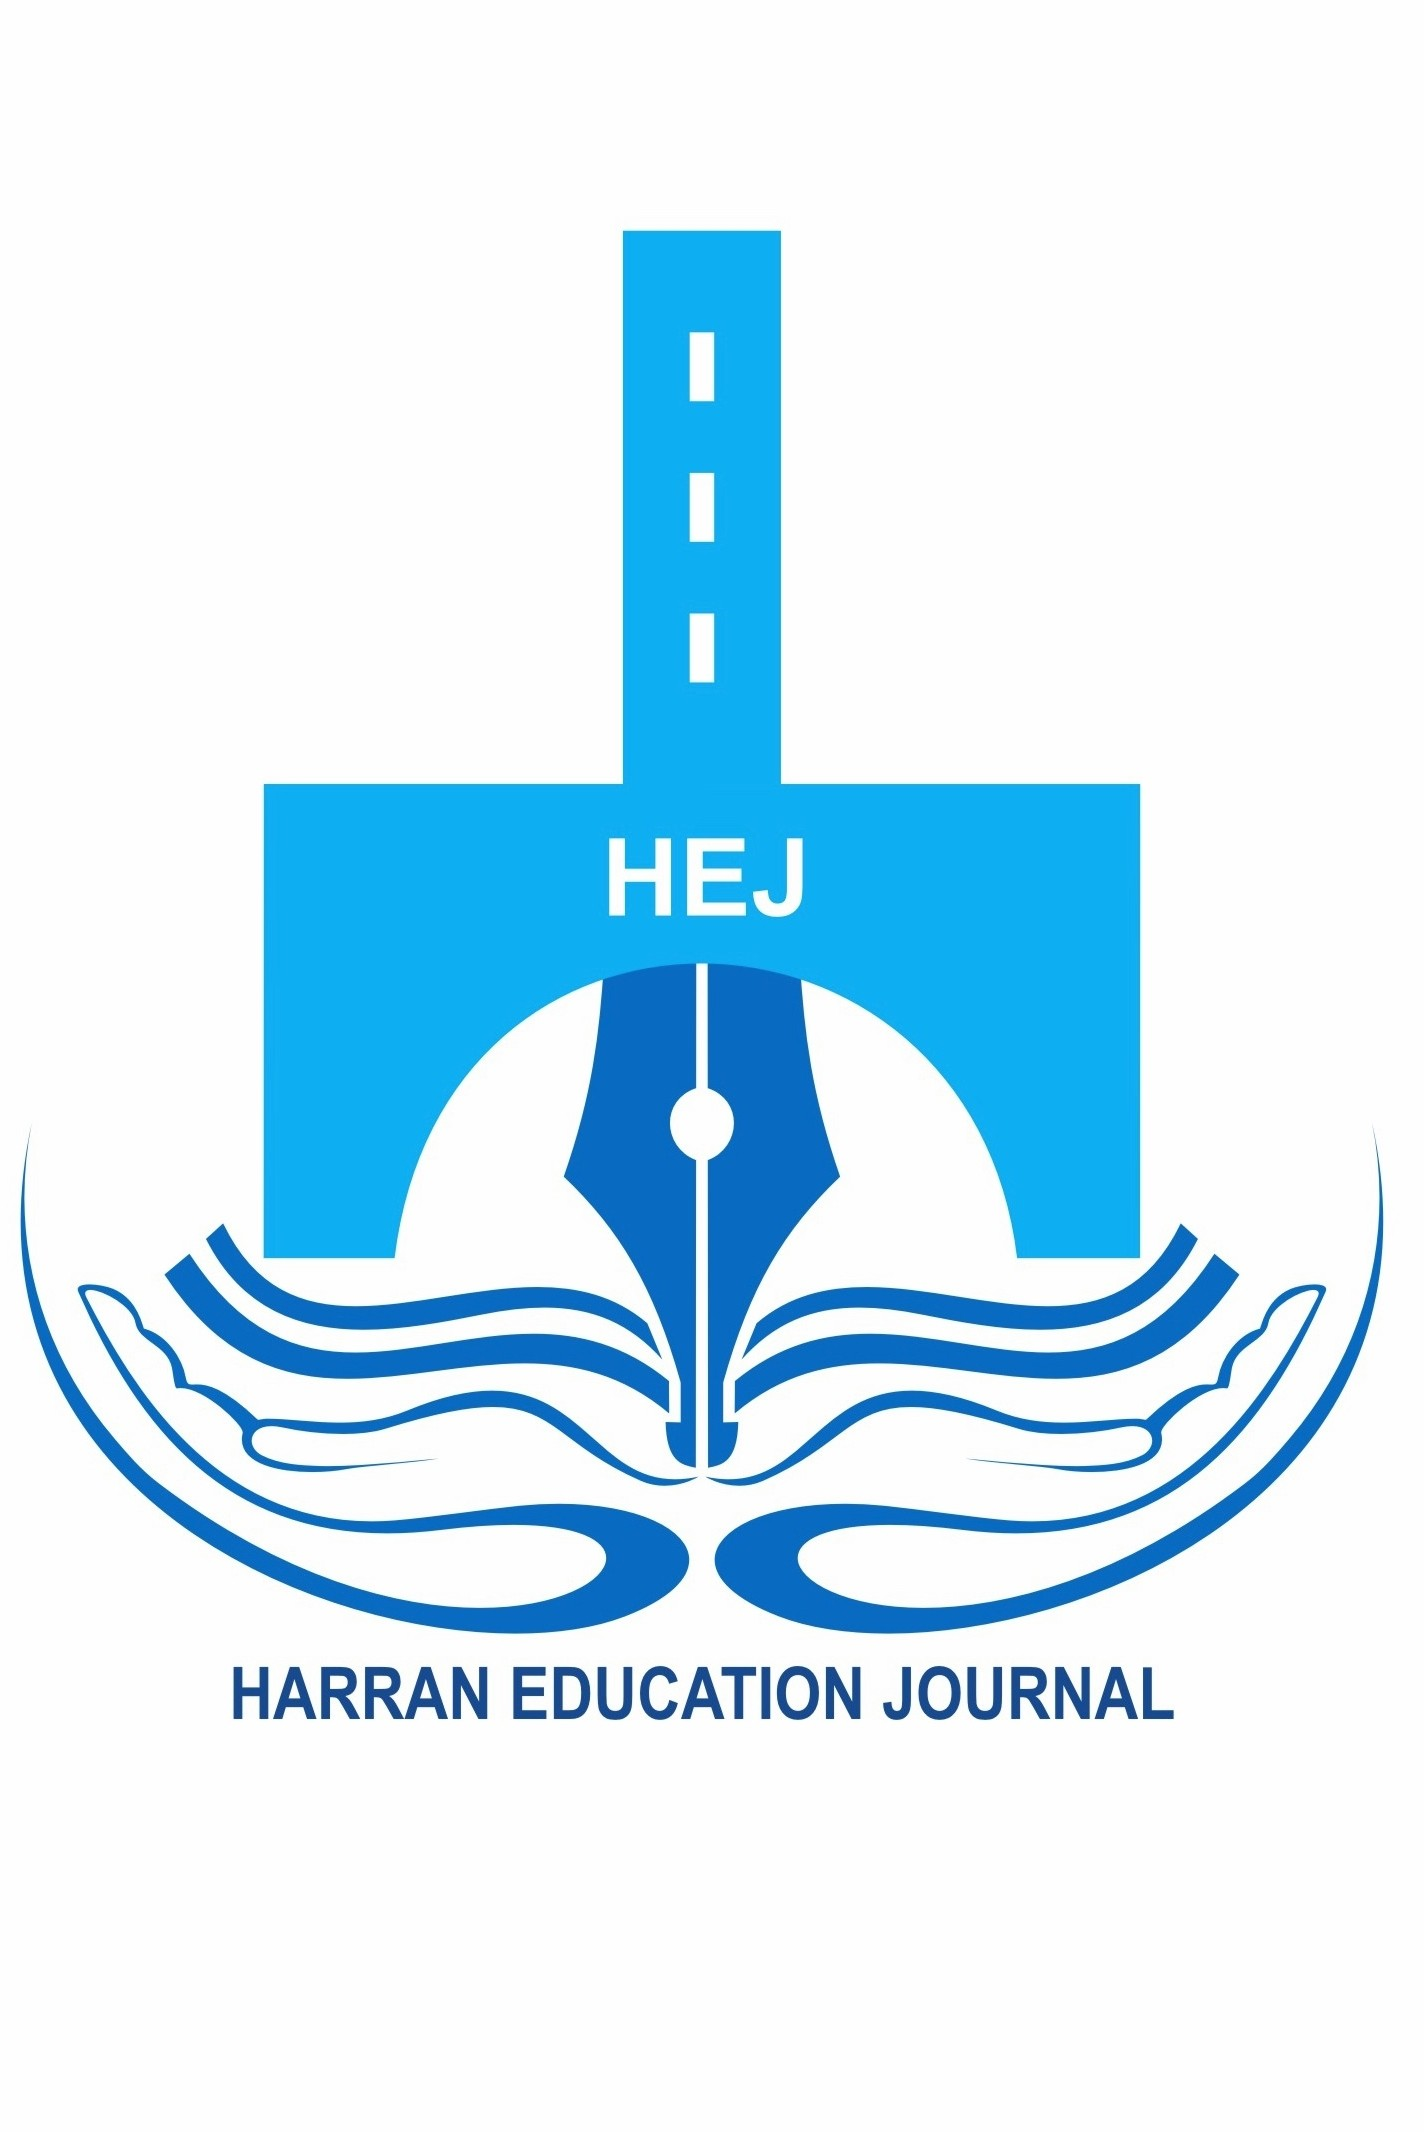 Harran Education Journal